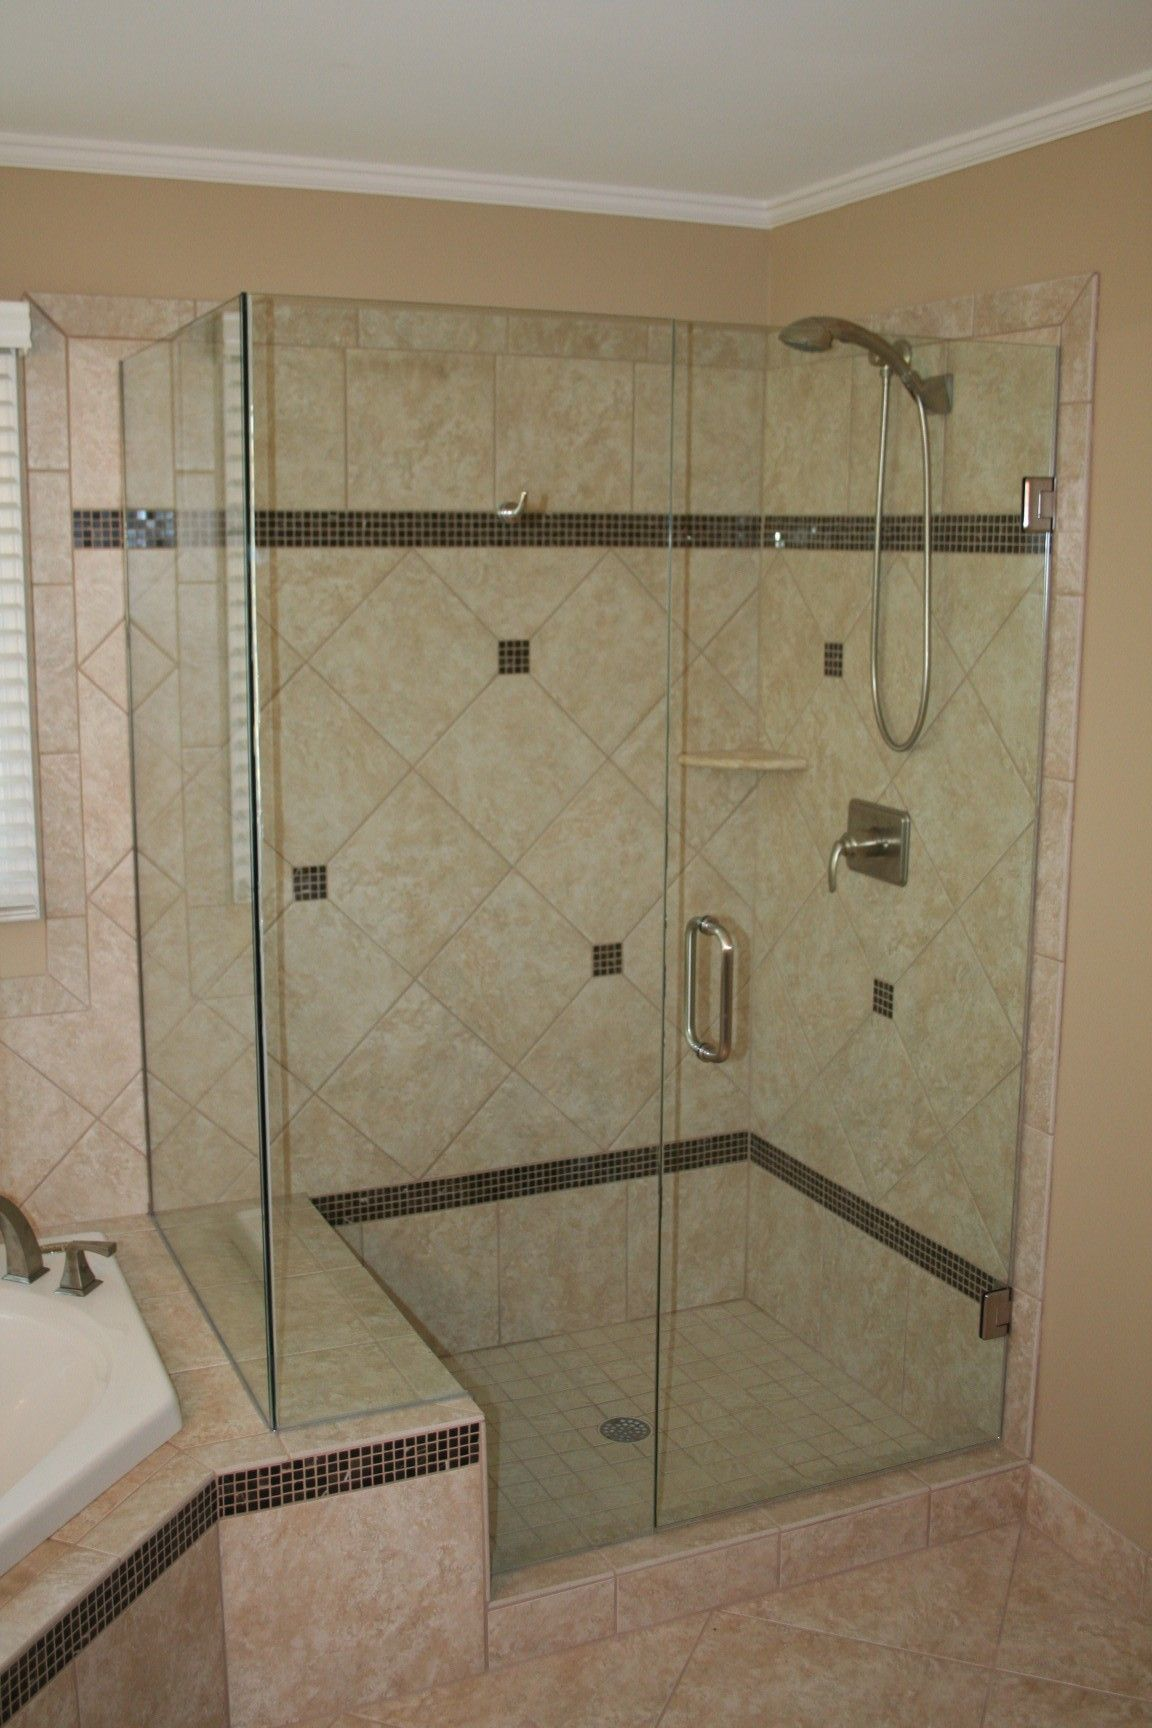 glass corner shower by room single doors micah swing home with walk pinterest cubicle bowie and austin on breathtaking ideas in of powder pin